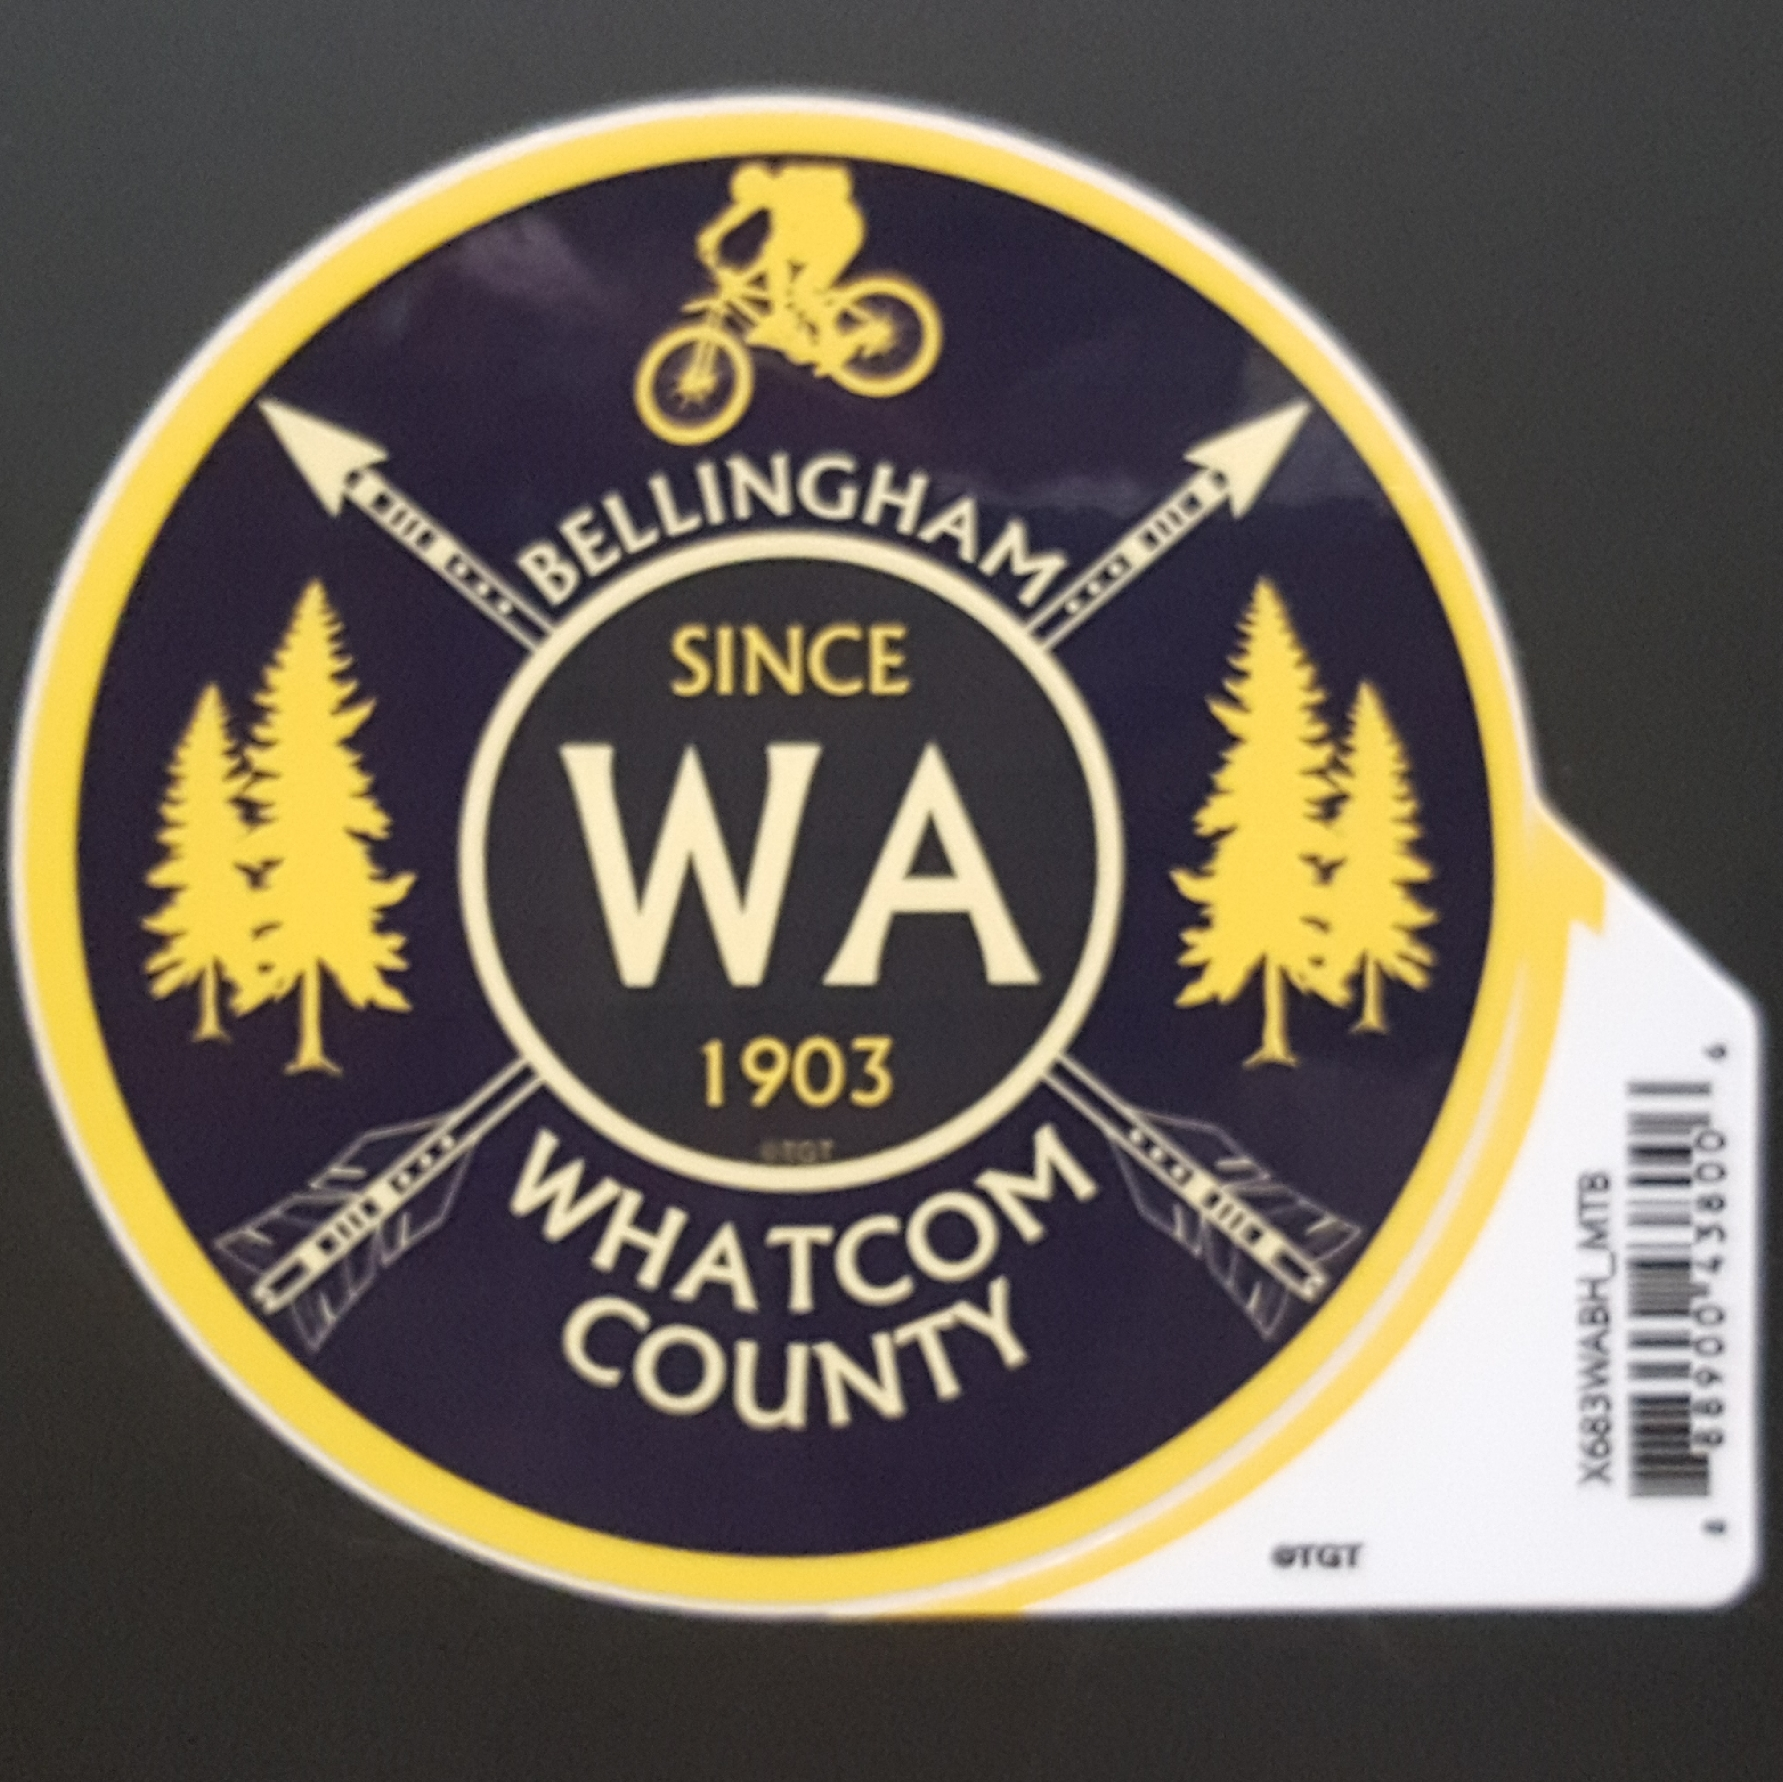 Dart Circle Whatcom County